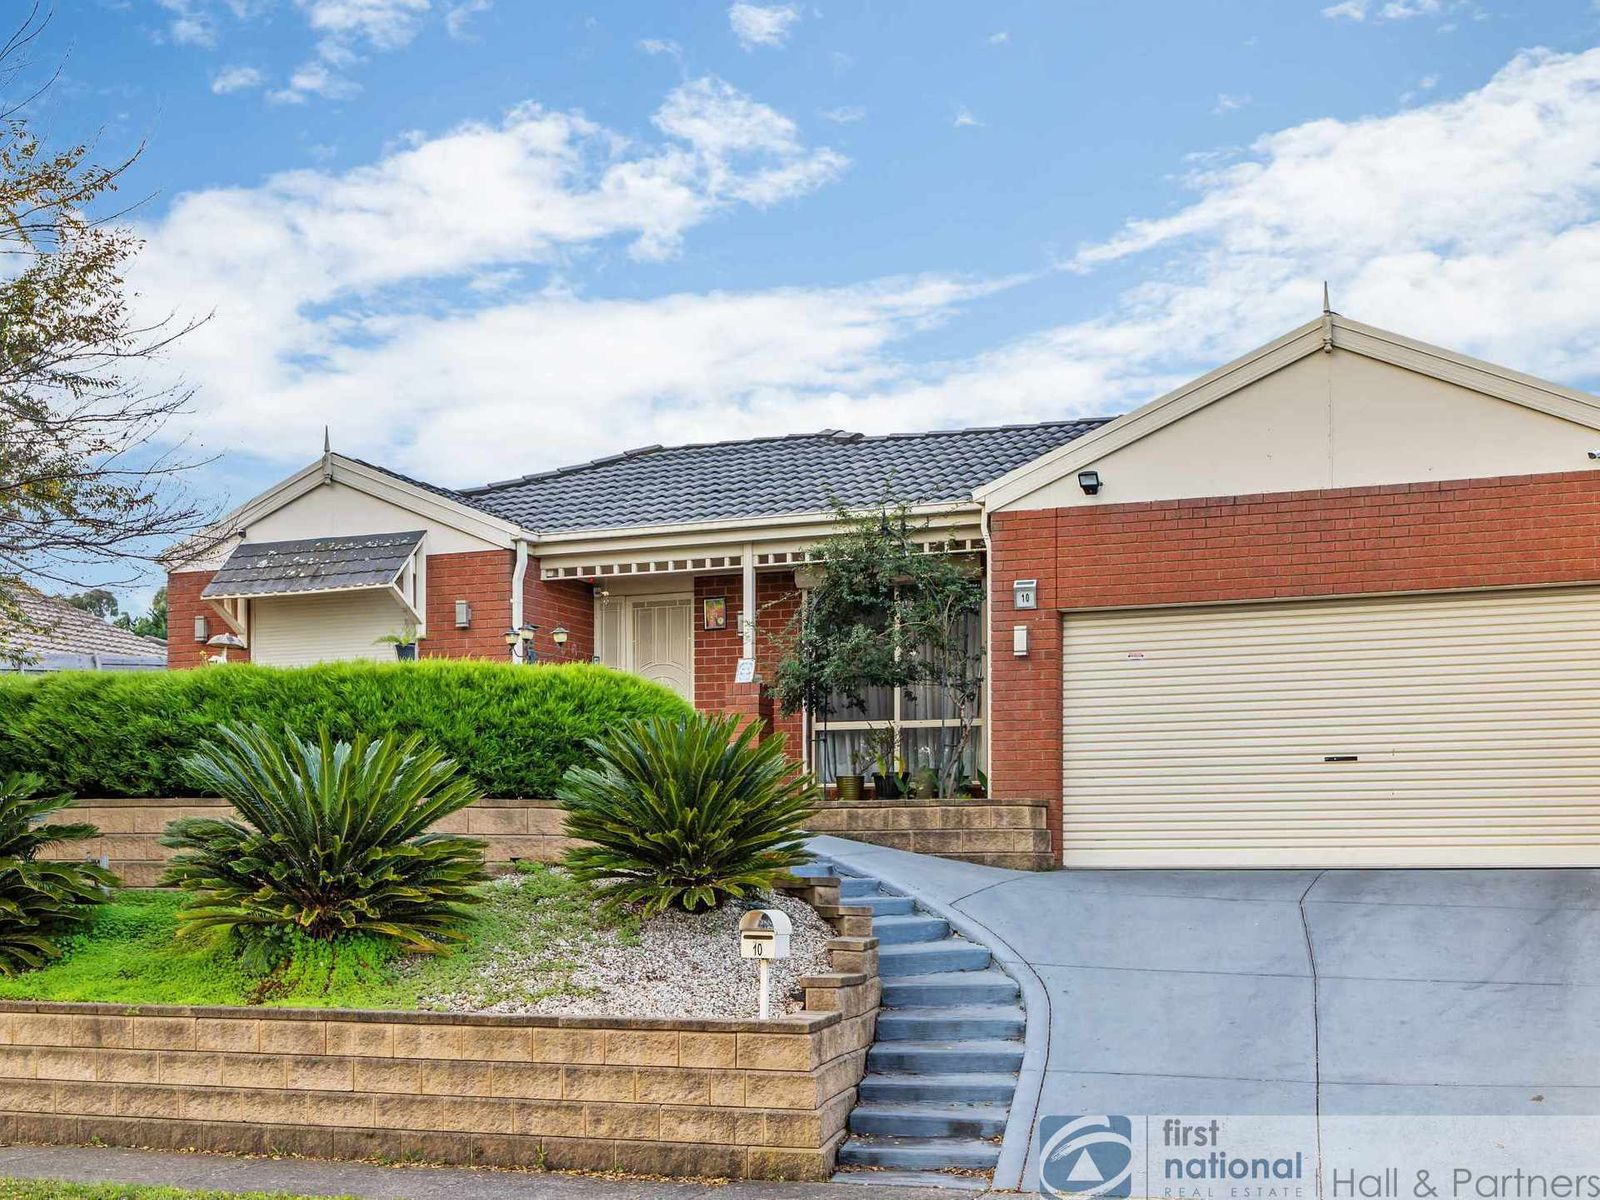 10 Palm Way, Narre Warren South, VIC 3805